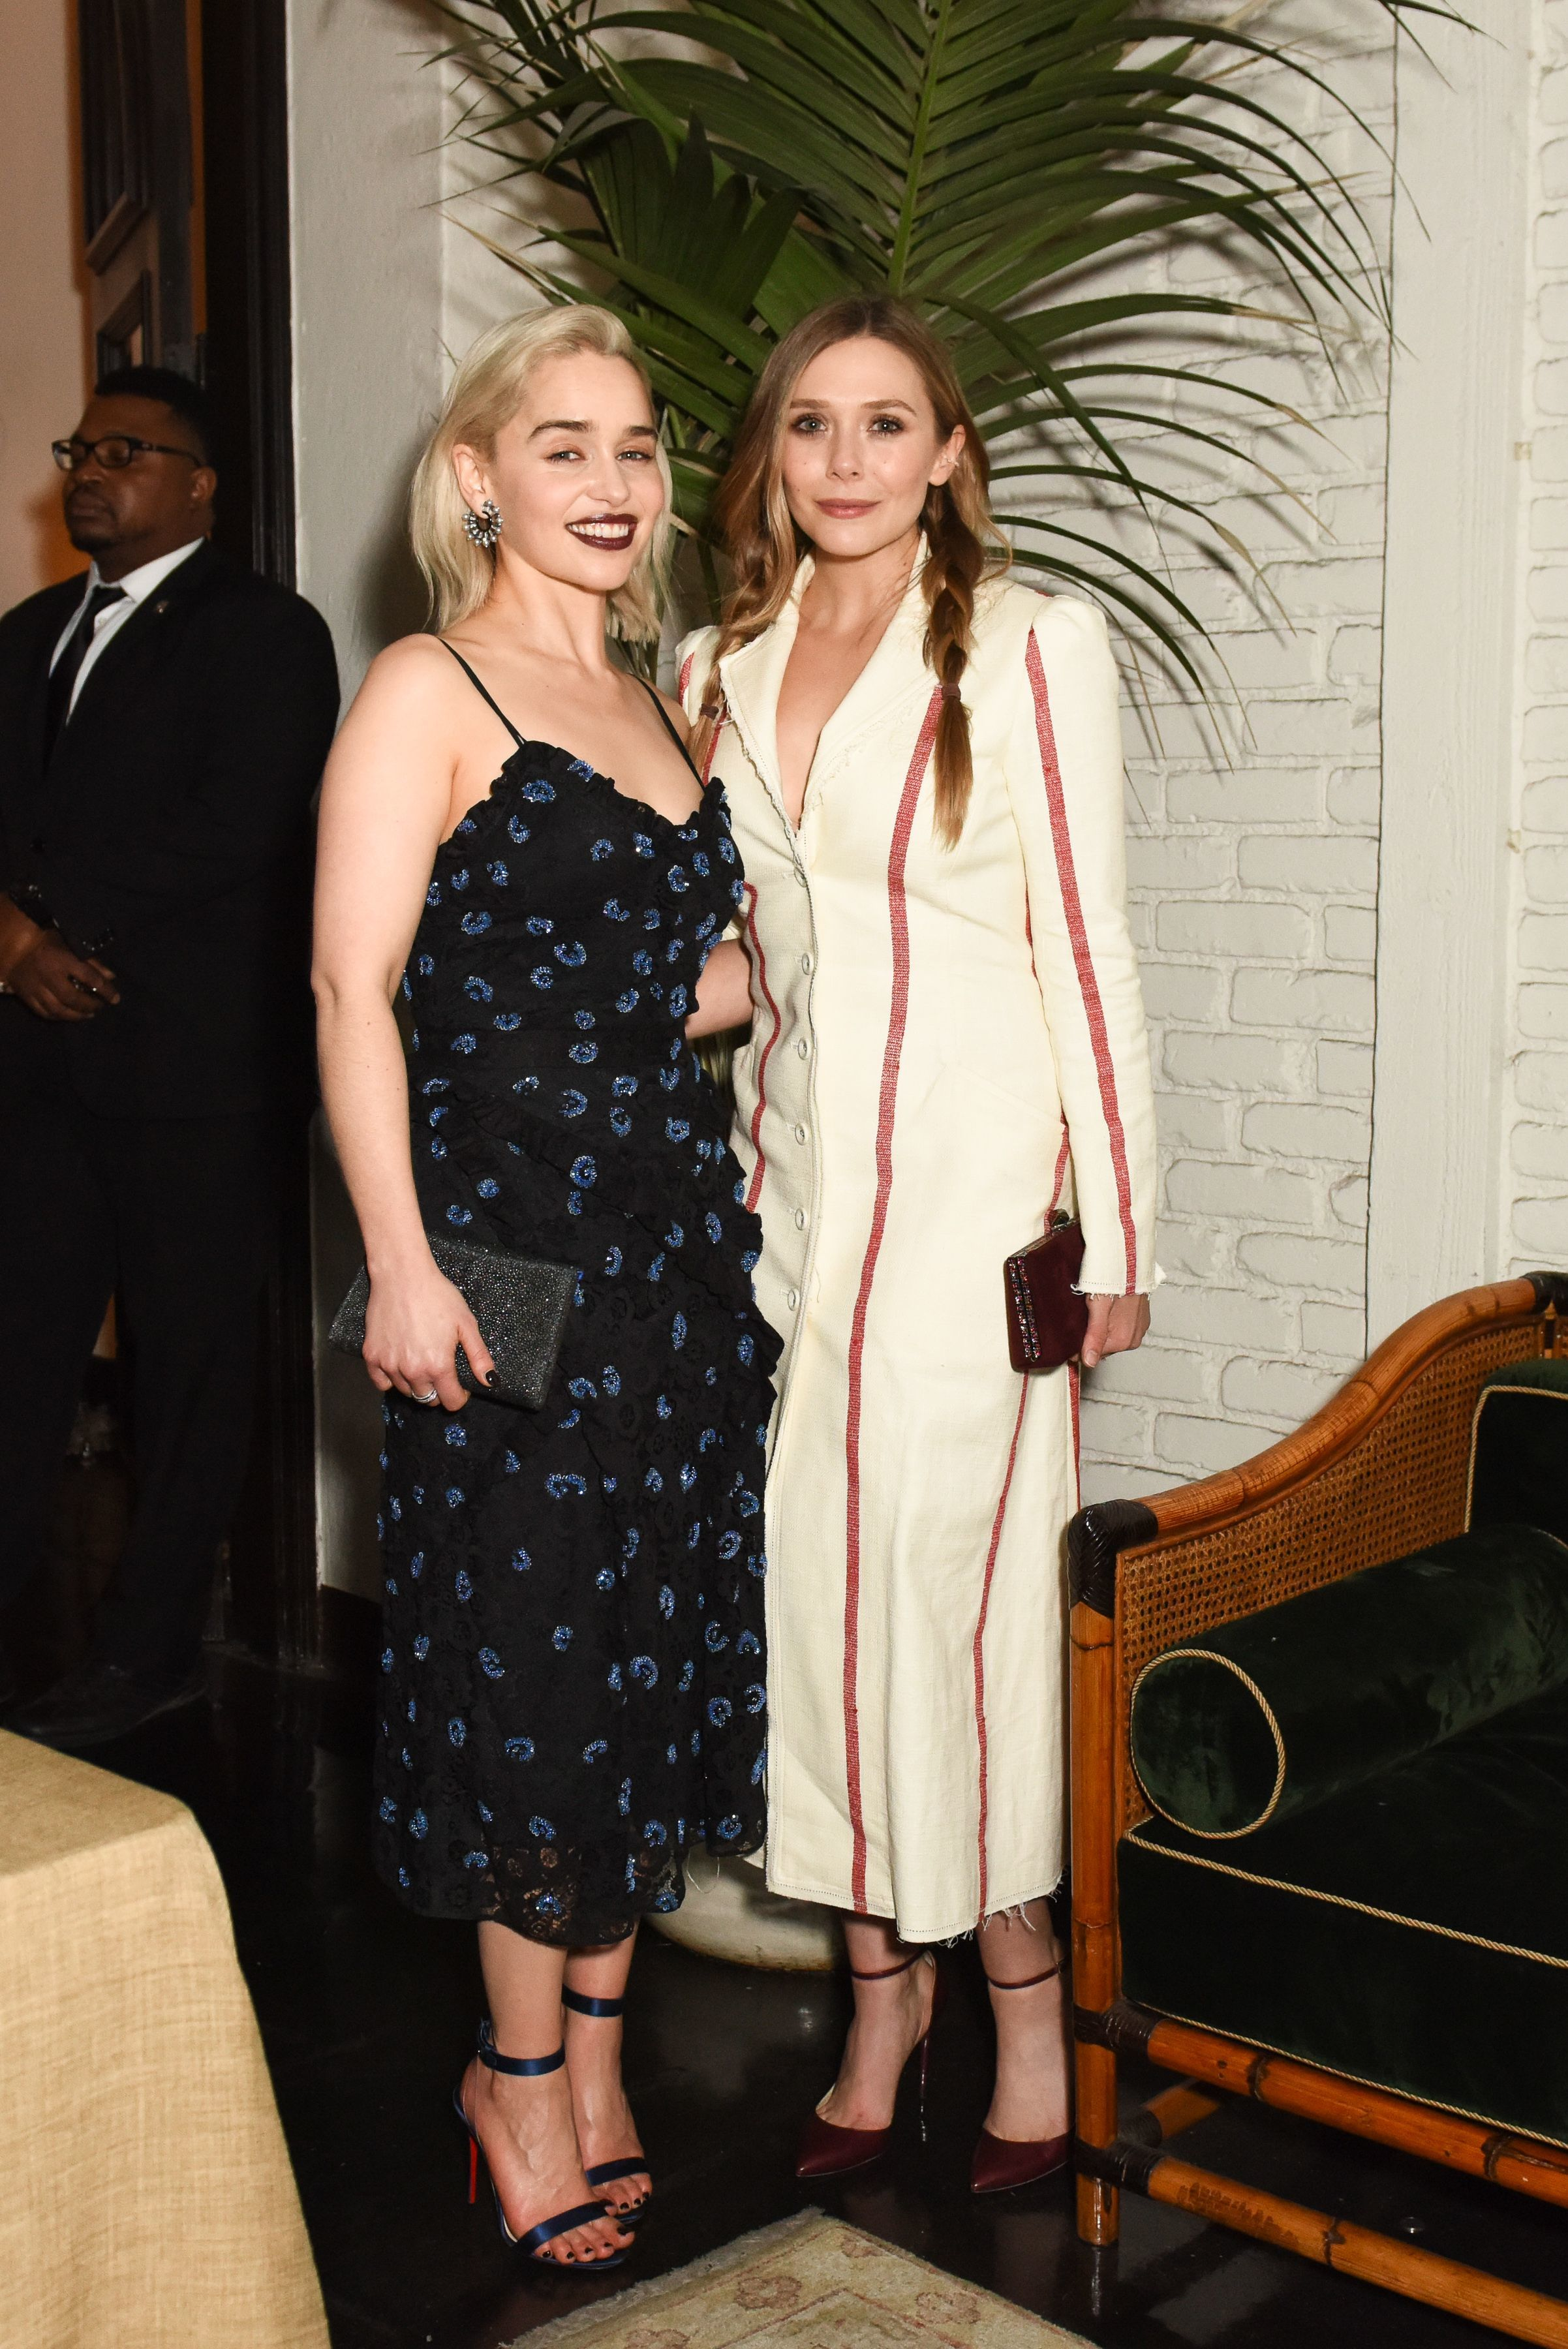 Emilia Clarke and Elizabeth Olsen attend the W Magazine Celebrates Its Best Performances Portfolio and the Golden Globes with Audi, Dior, and Dom Perignon in Los Angeles on Jan. 4, 2018.